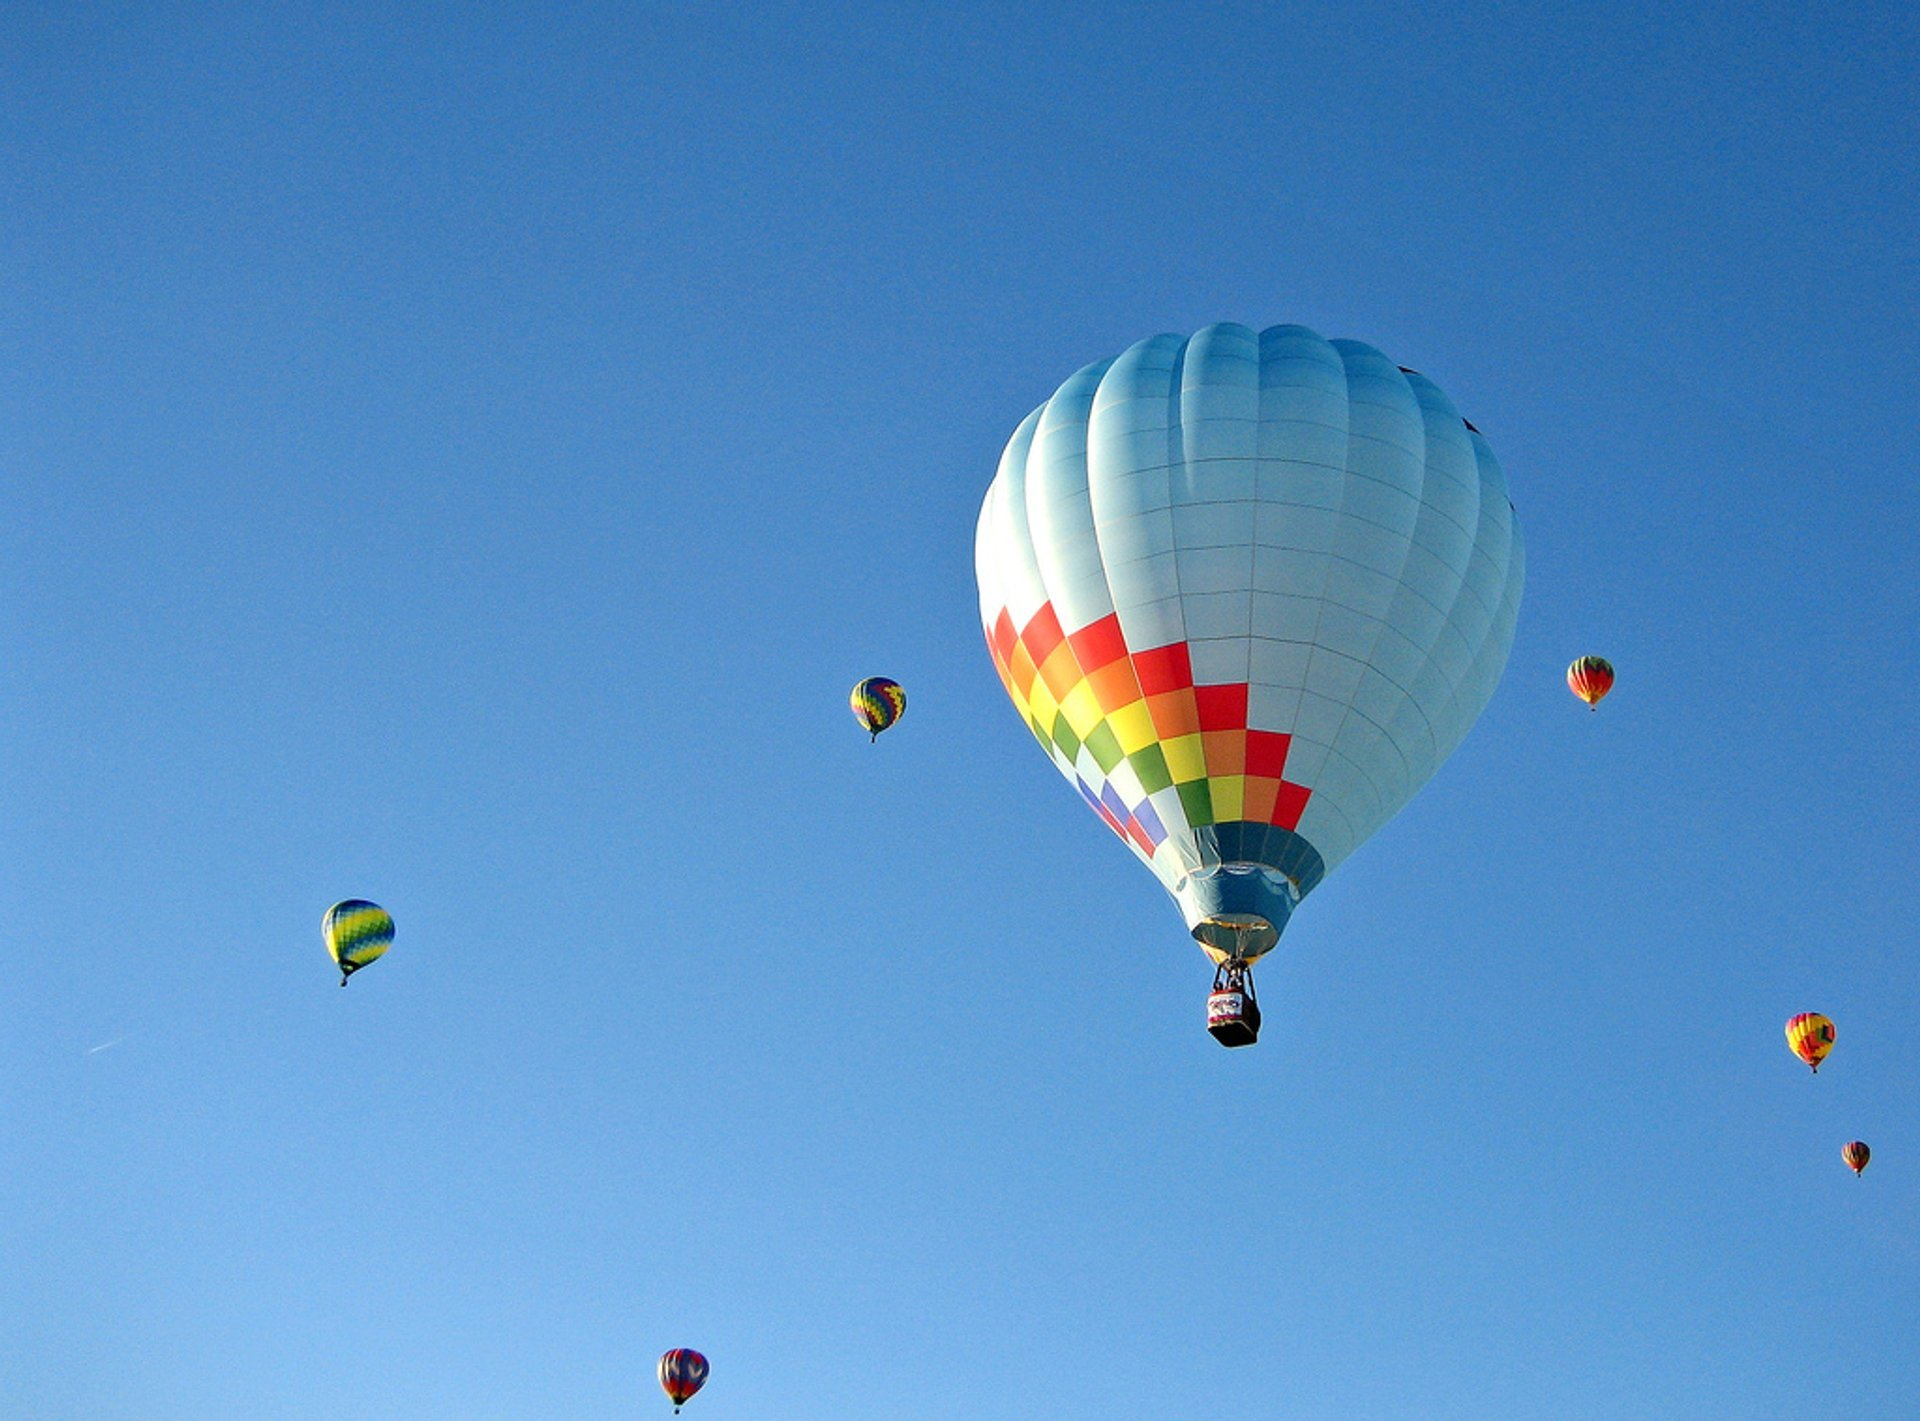 Sunset Hot Air Balloon Rides in Las Vegas - Best Time